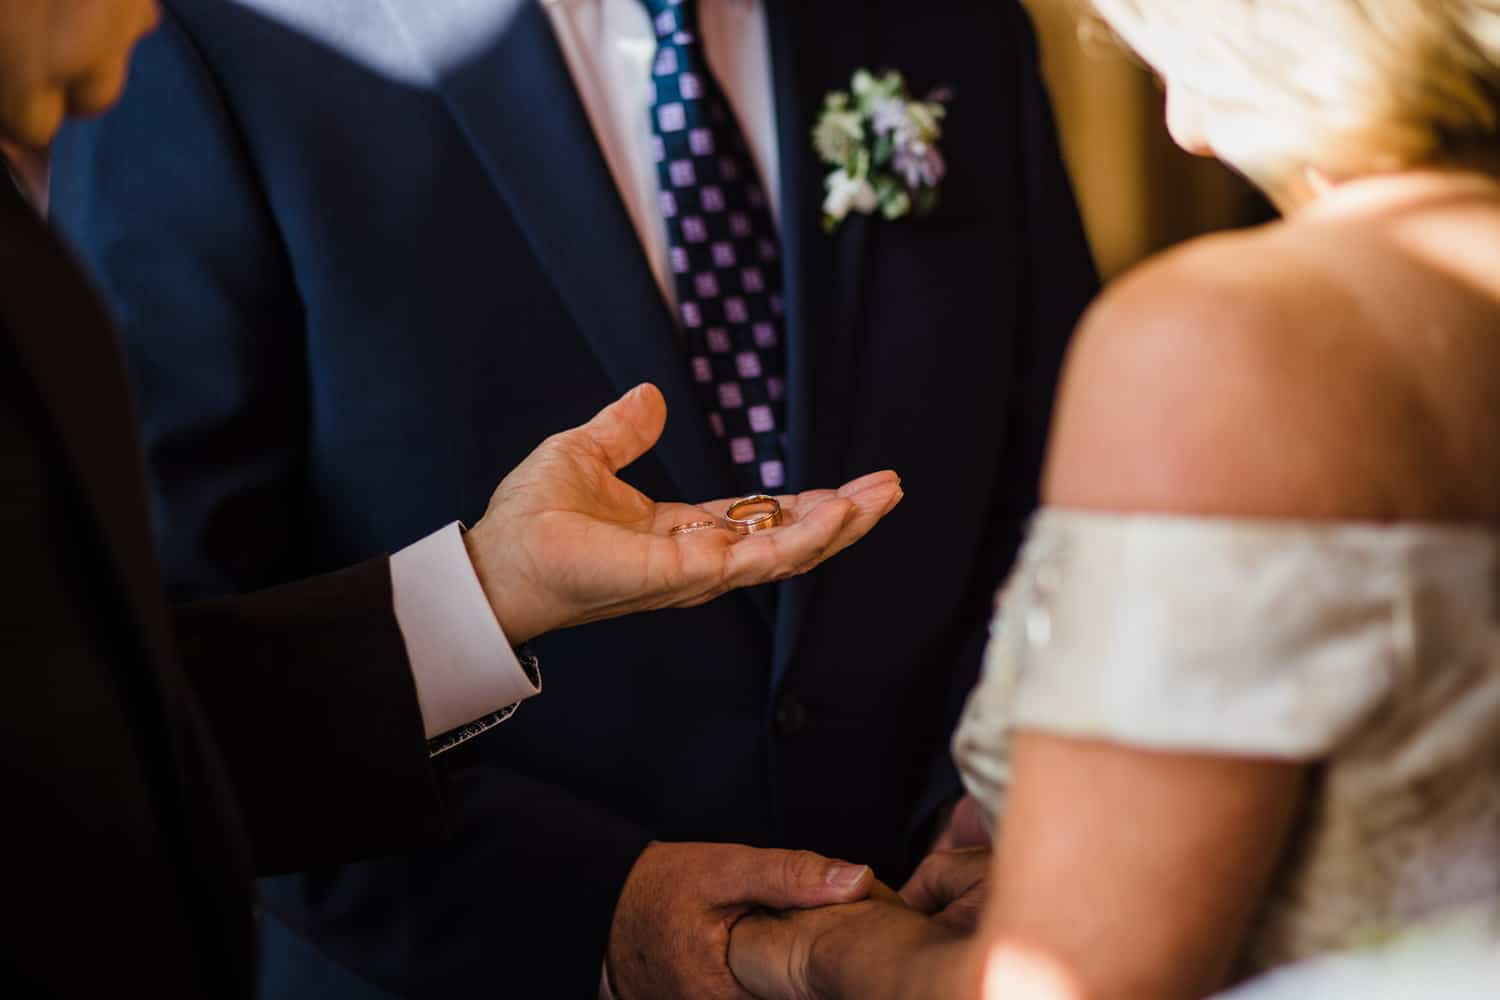 Couple exchange rings during wedding ceremony